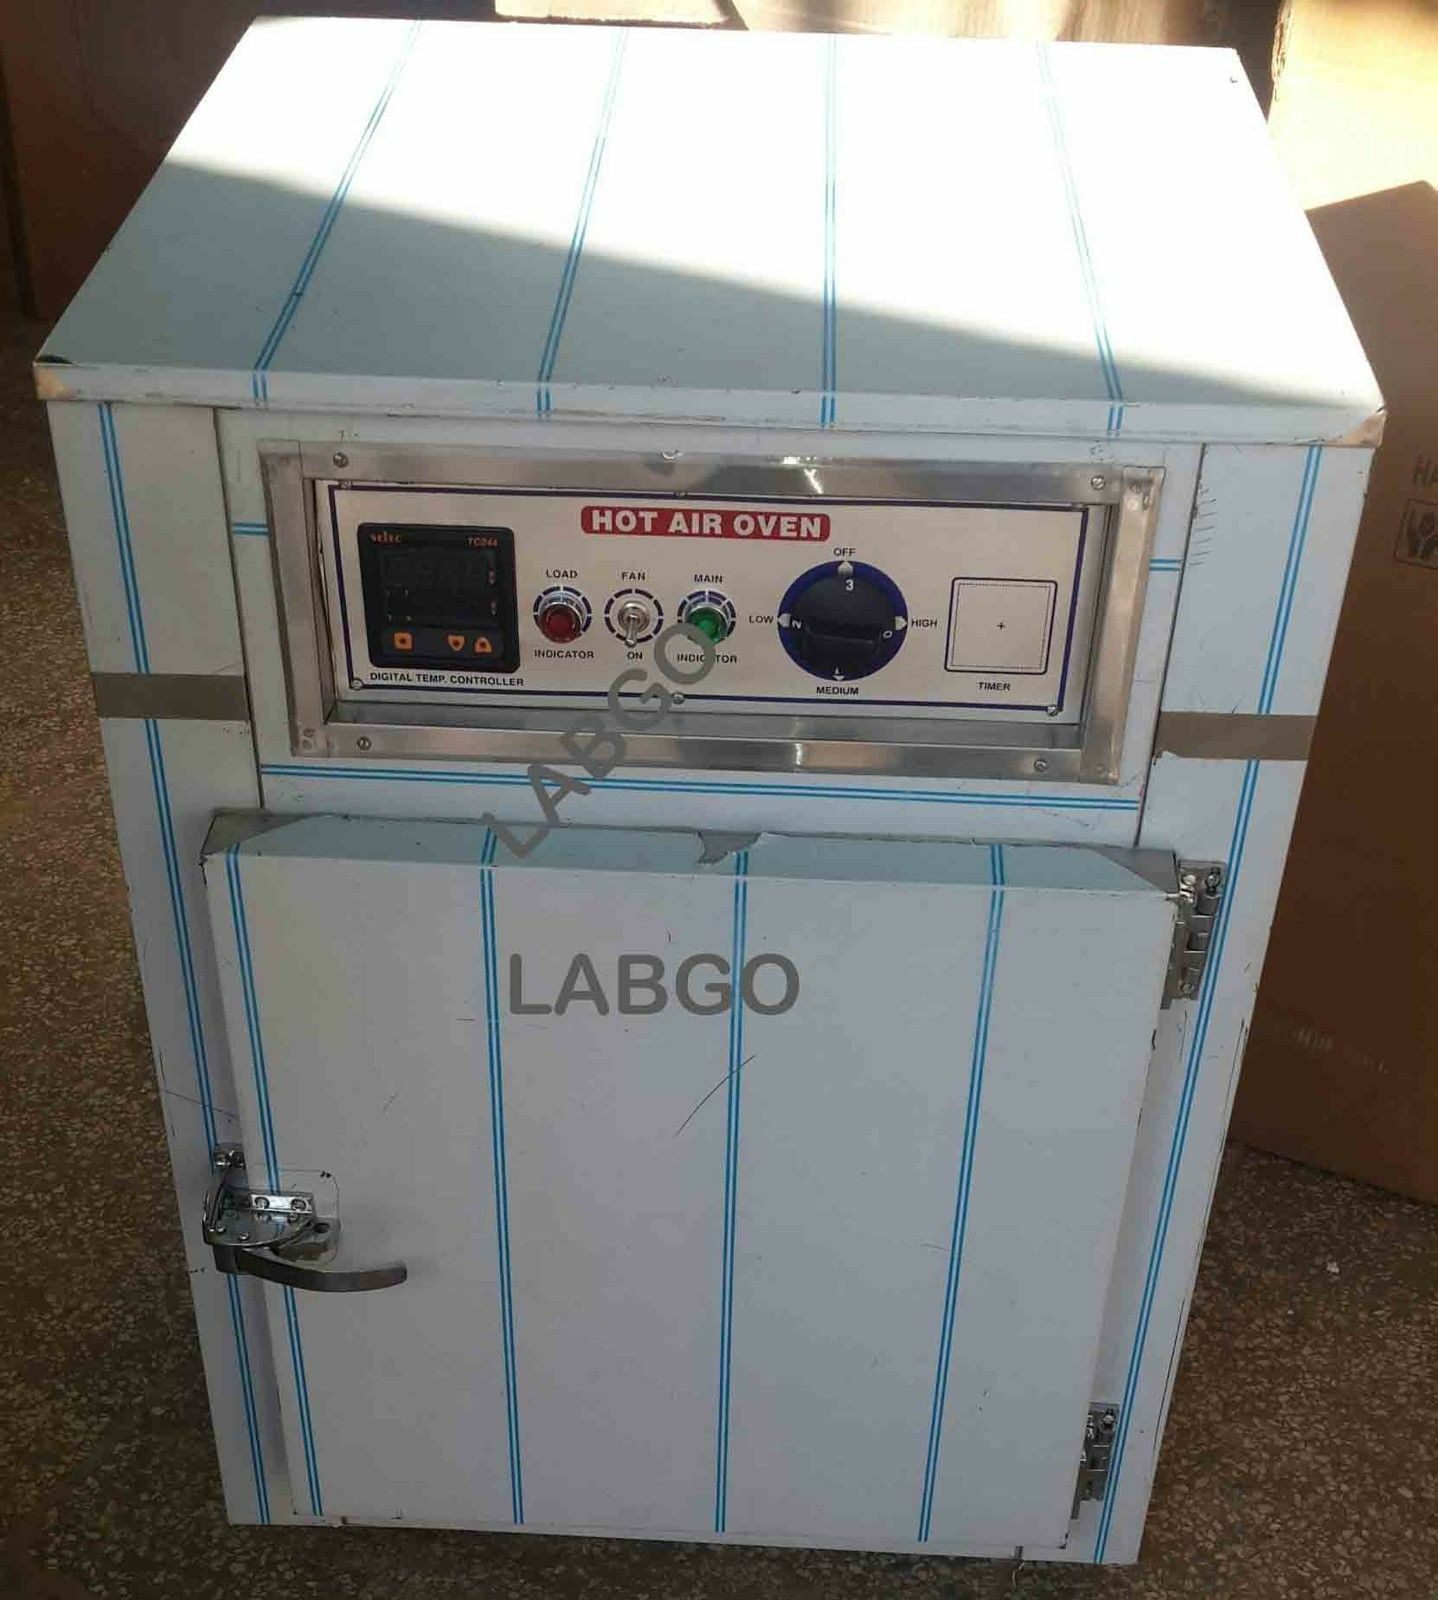 Hot Air Oven Labgo 124 53200 Picclick 15kw 30 80khz All Solid State Induction Heater Heating Melting Furnace 1 Of 1free Shipping